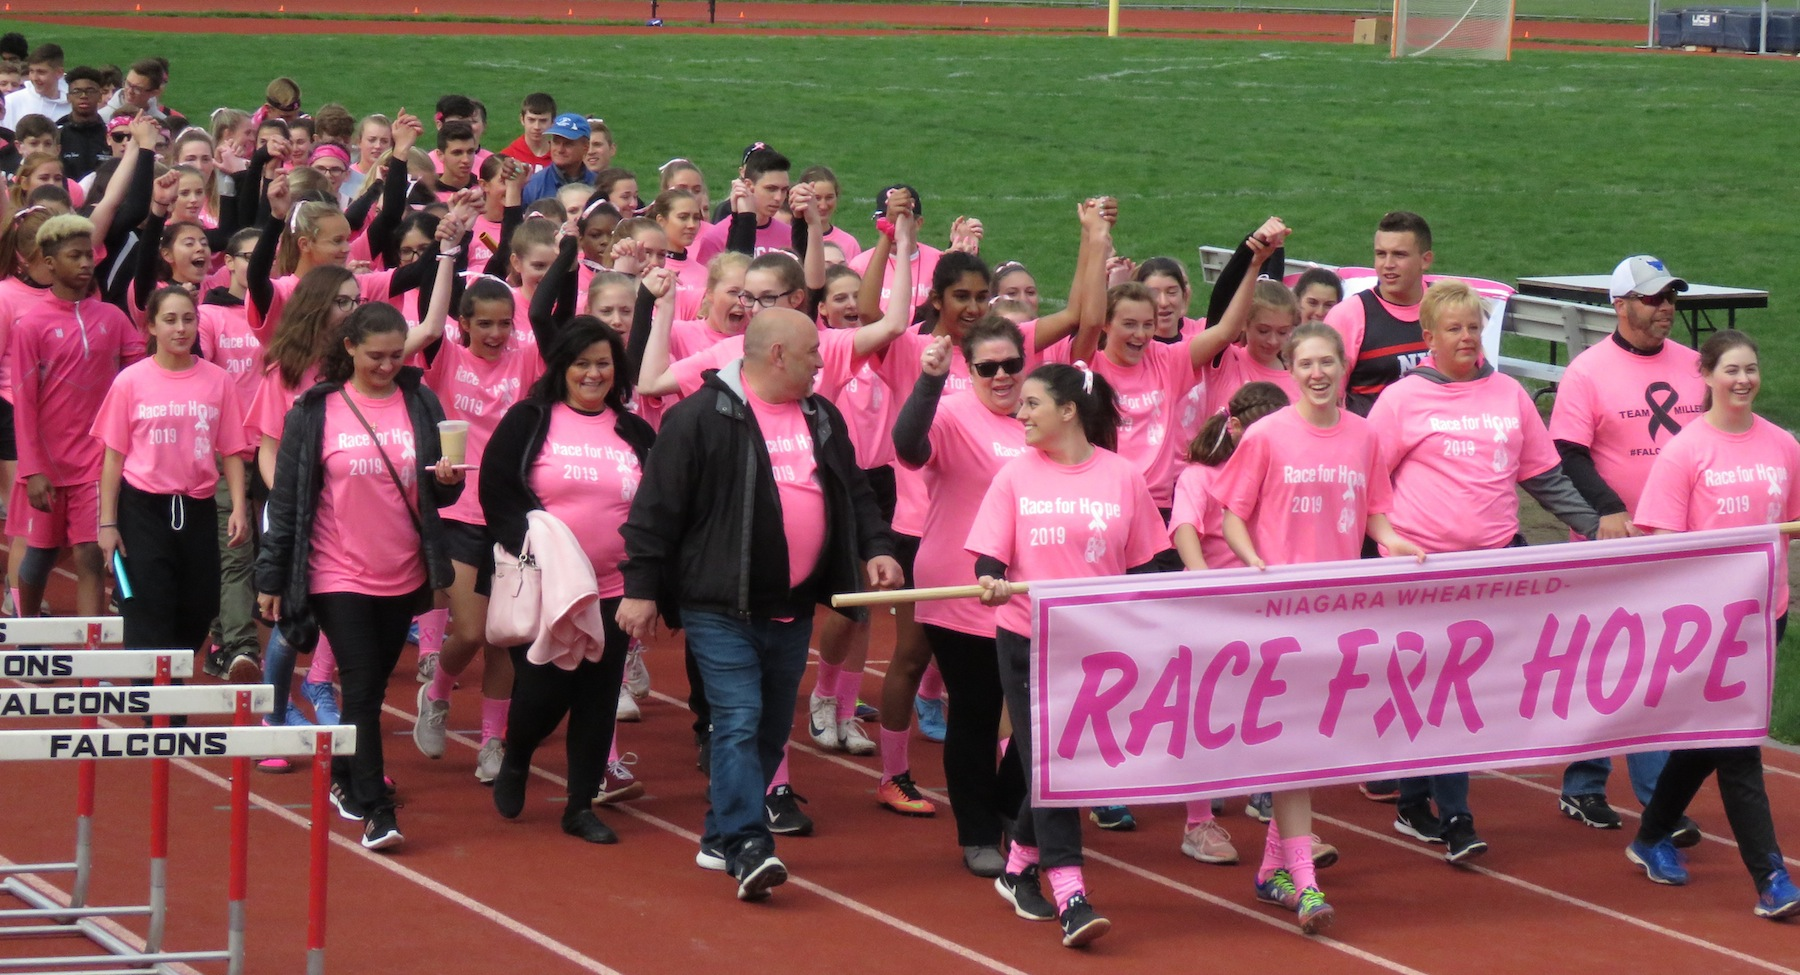 During an honorary lap, the Niagara-Wheatfield track and field team crosses the finish line alongside cancer survivors and fighters at a `Race for Hope.` (Photos by David Yarger)